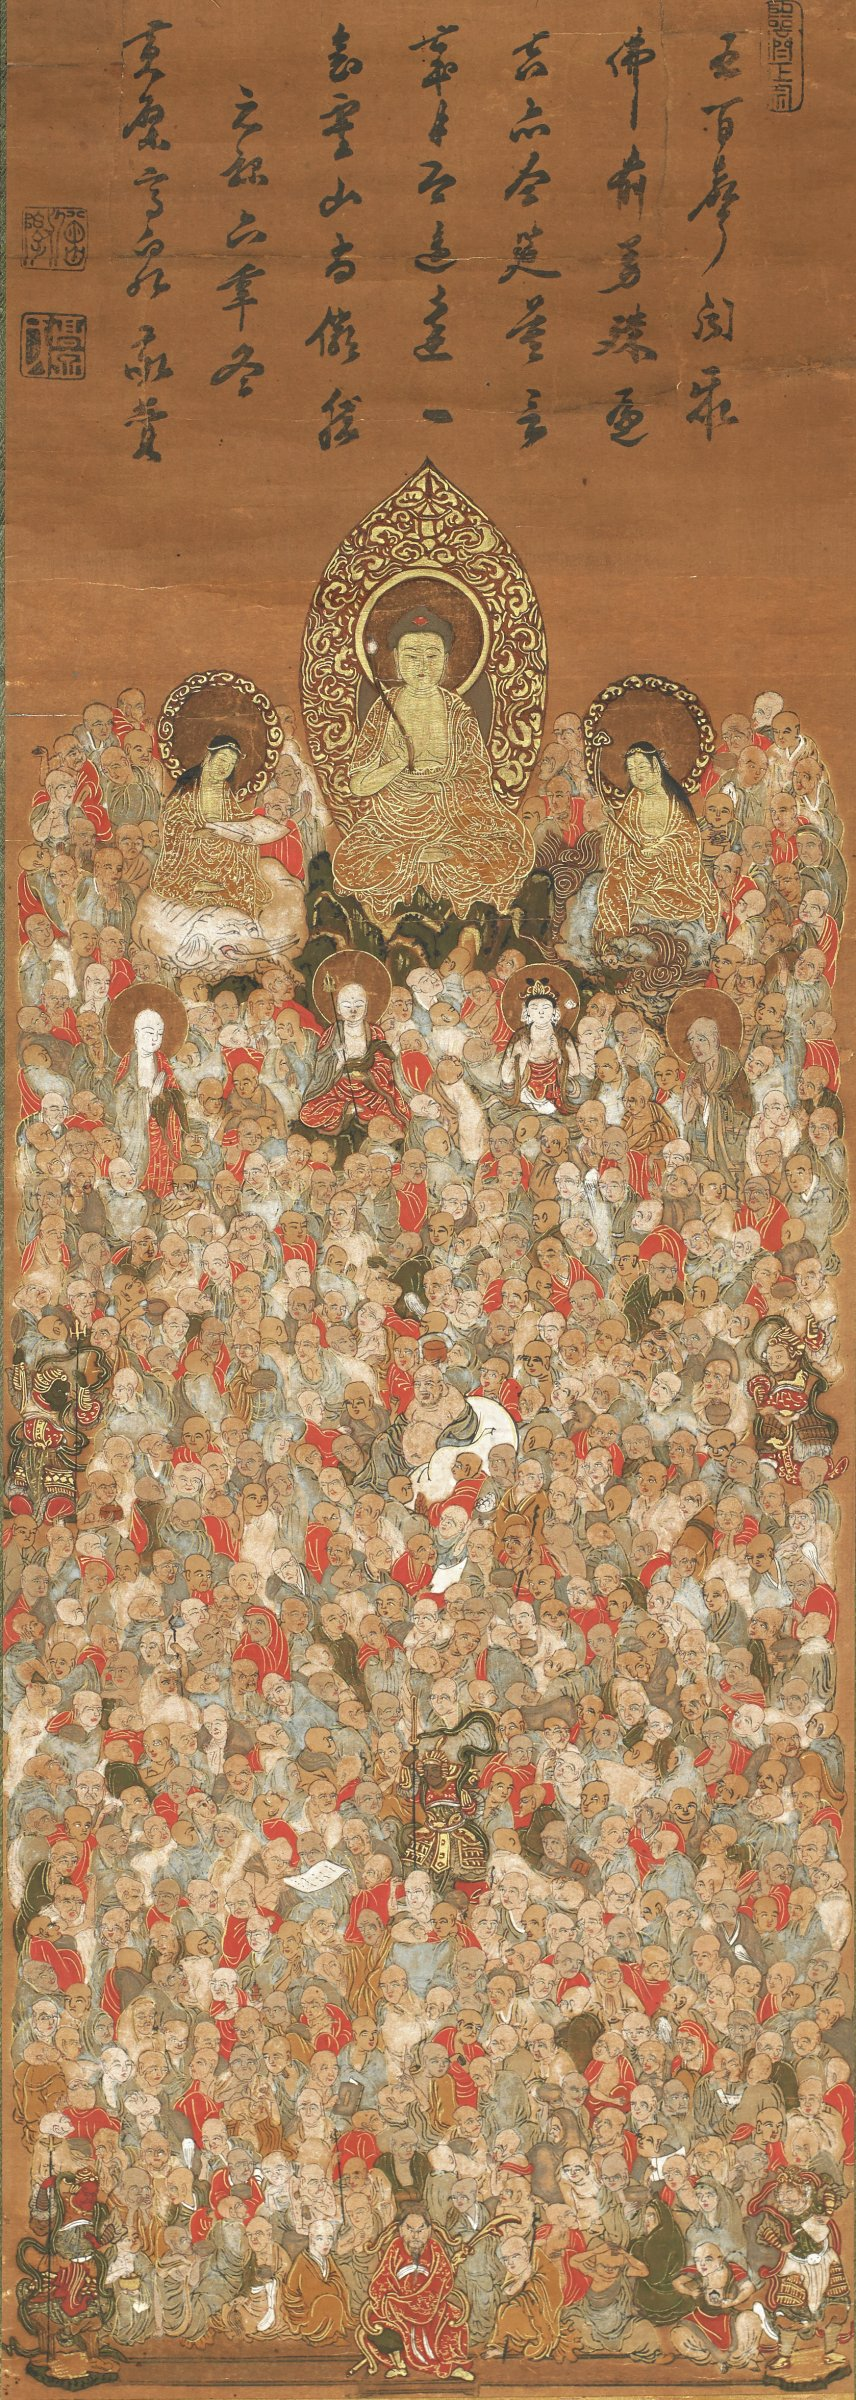 Buddha flanked by Monju (Manjushri) and Wenju (Samantabhadra) with a large audience of 1000 Raikan as well as the Shitenno and Guardians.